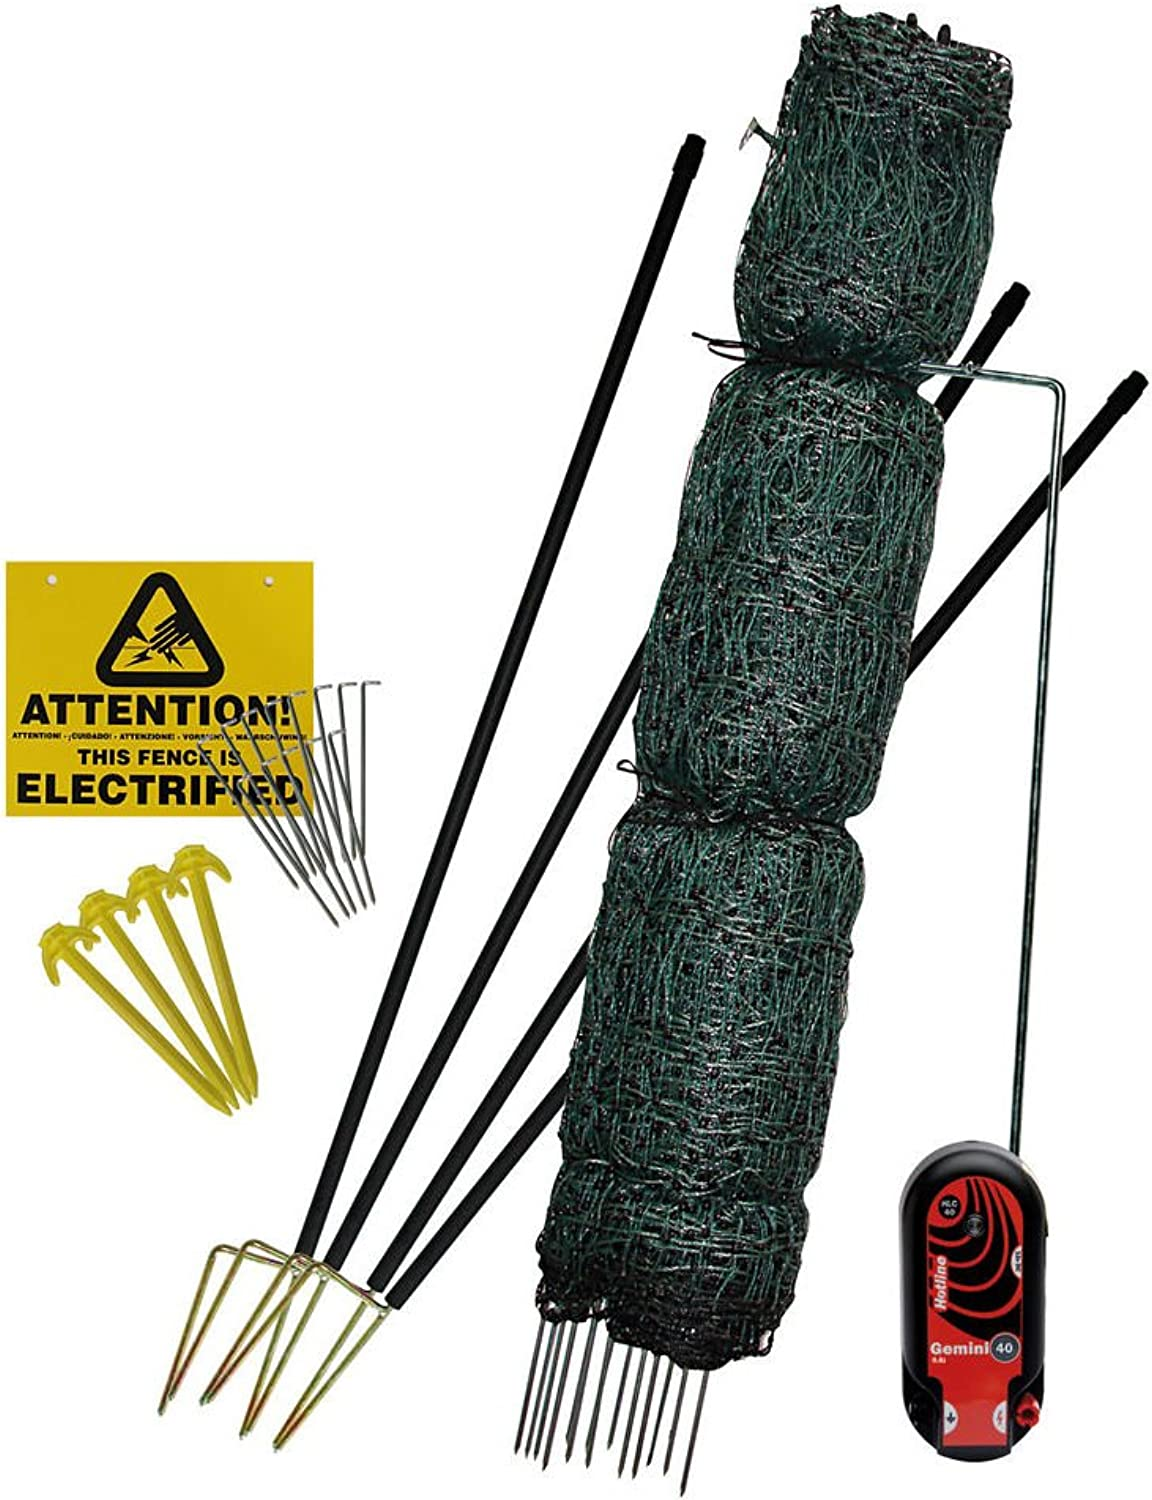 25m Poultry Electric Fence Kit